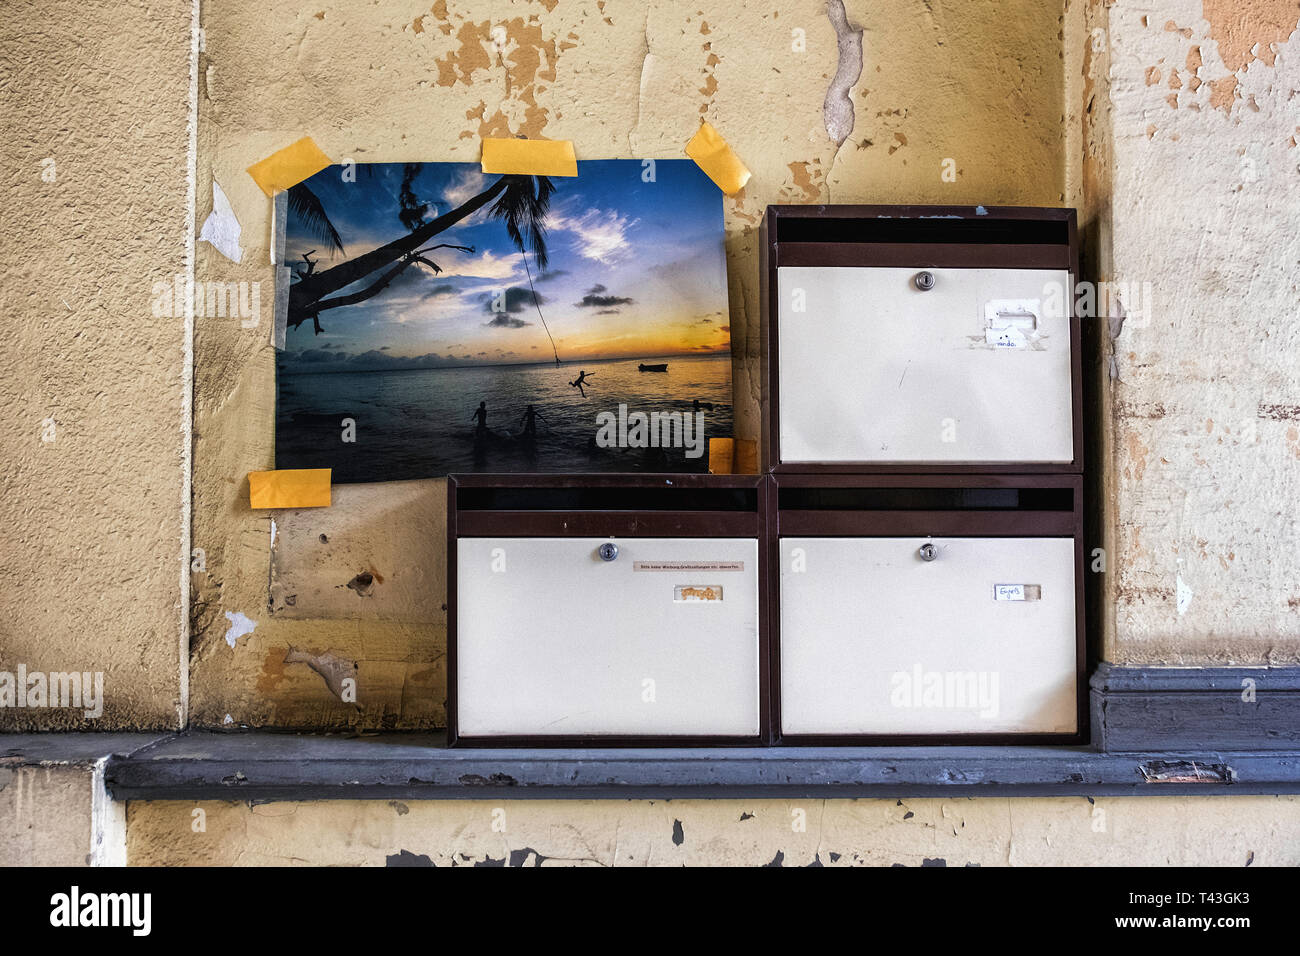 Berlin. Old apartment building detail. Peeling weathered wall with new postboxes & photograph taped to wall - Stock Image